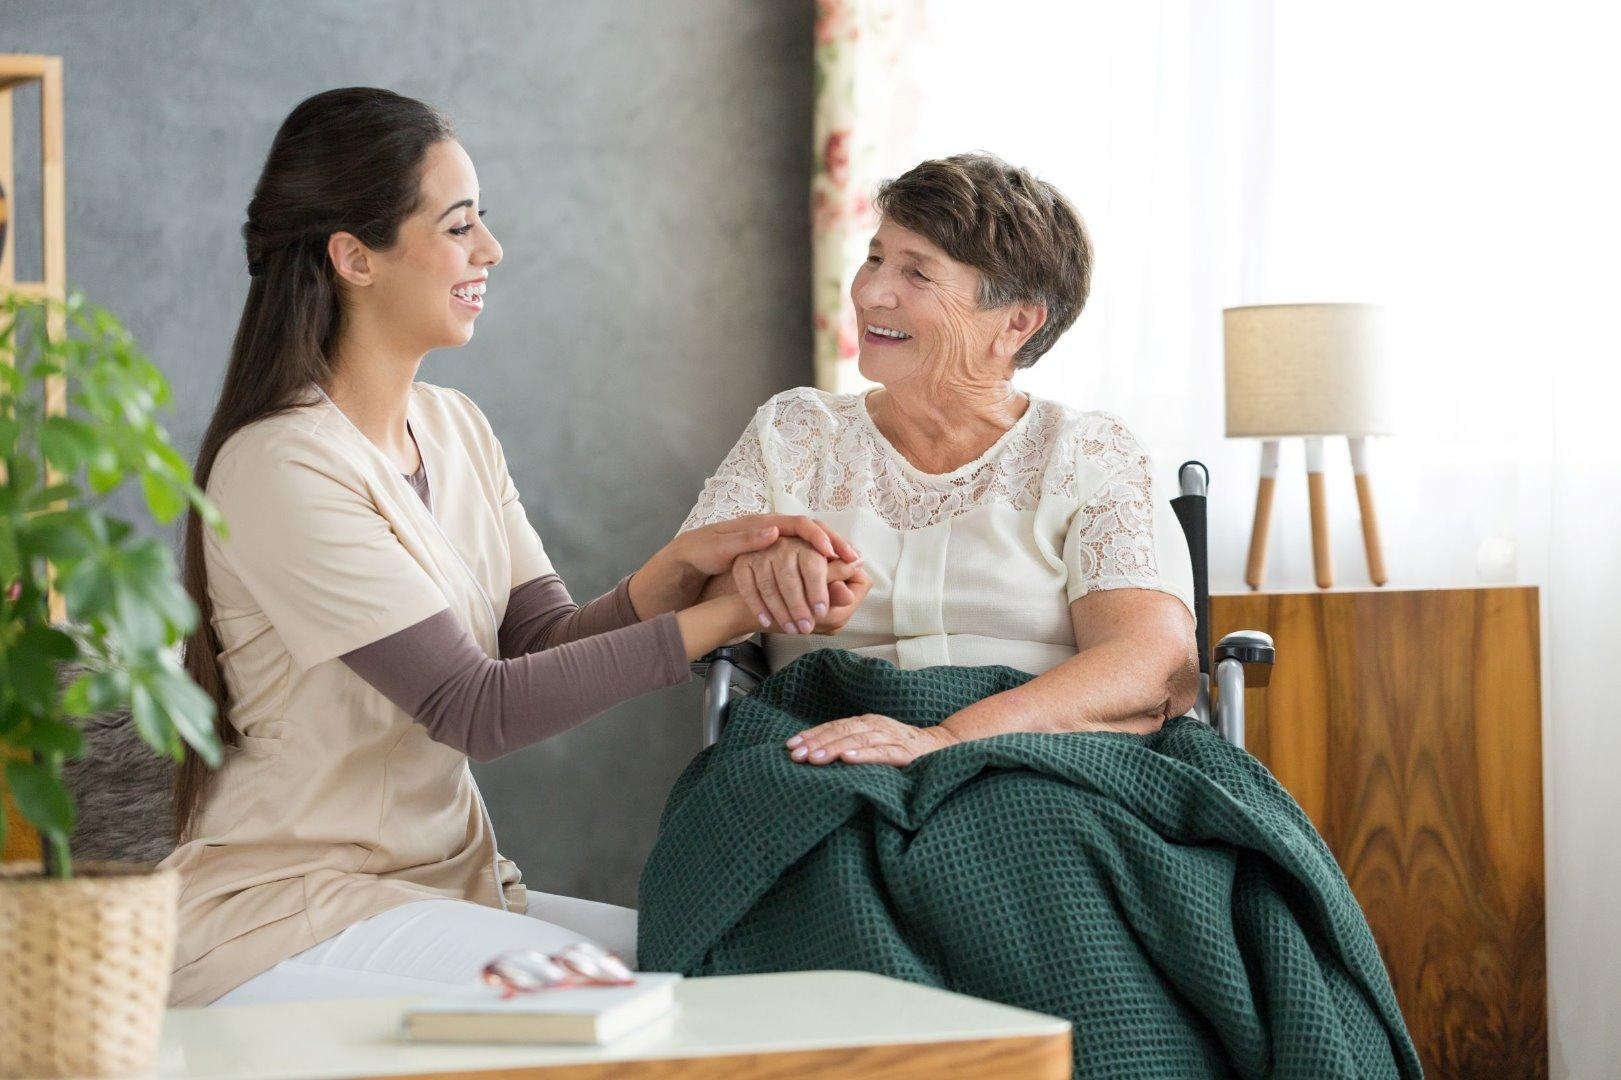 UNDERSTANDING HOME HEALTH CARE SERVICES